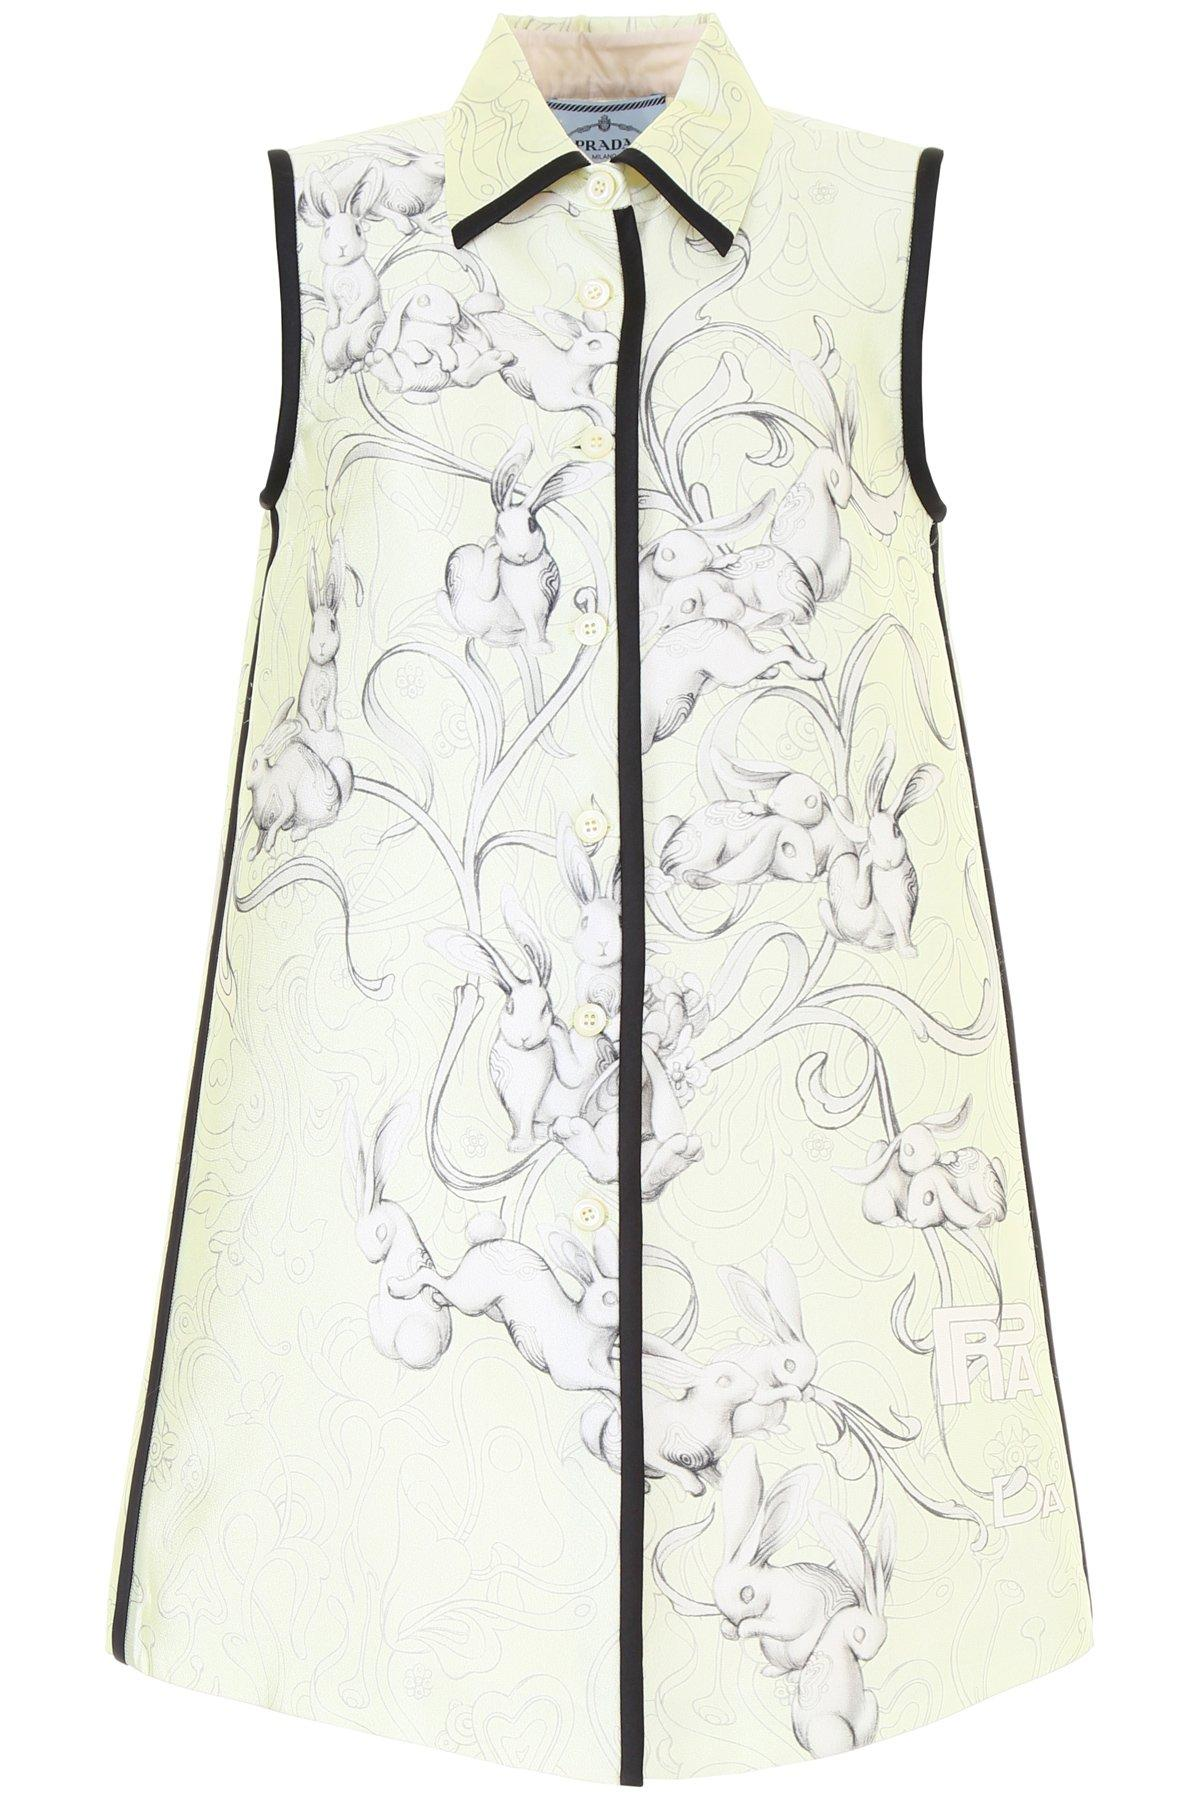 cc9fdfd570e09b Prada Bunny Print Collared Dress In Cream | ModeSens